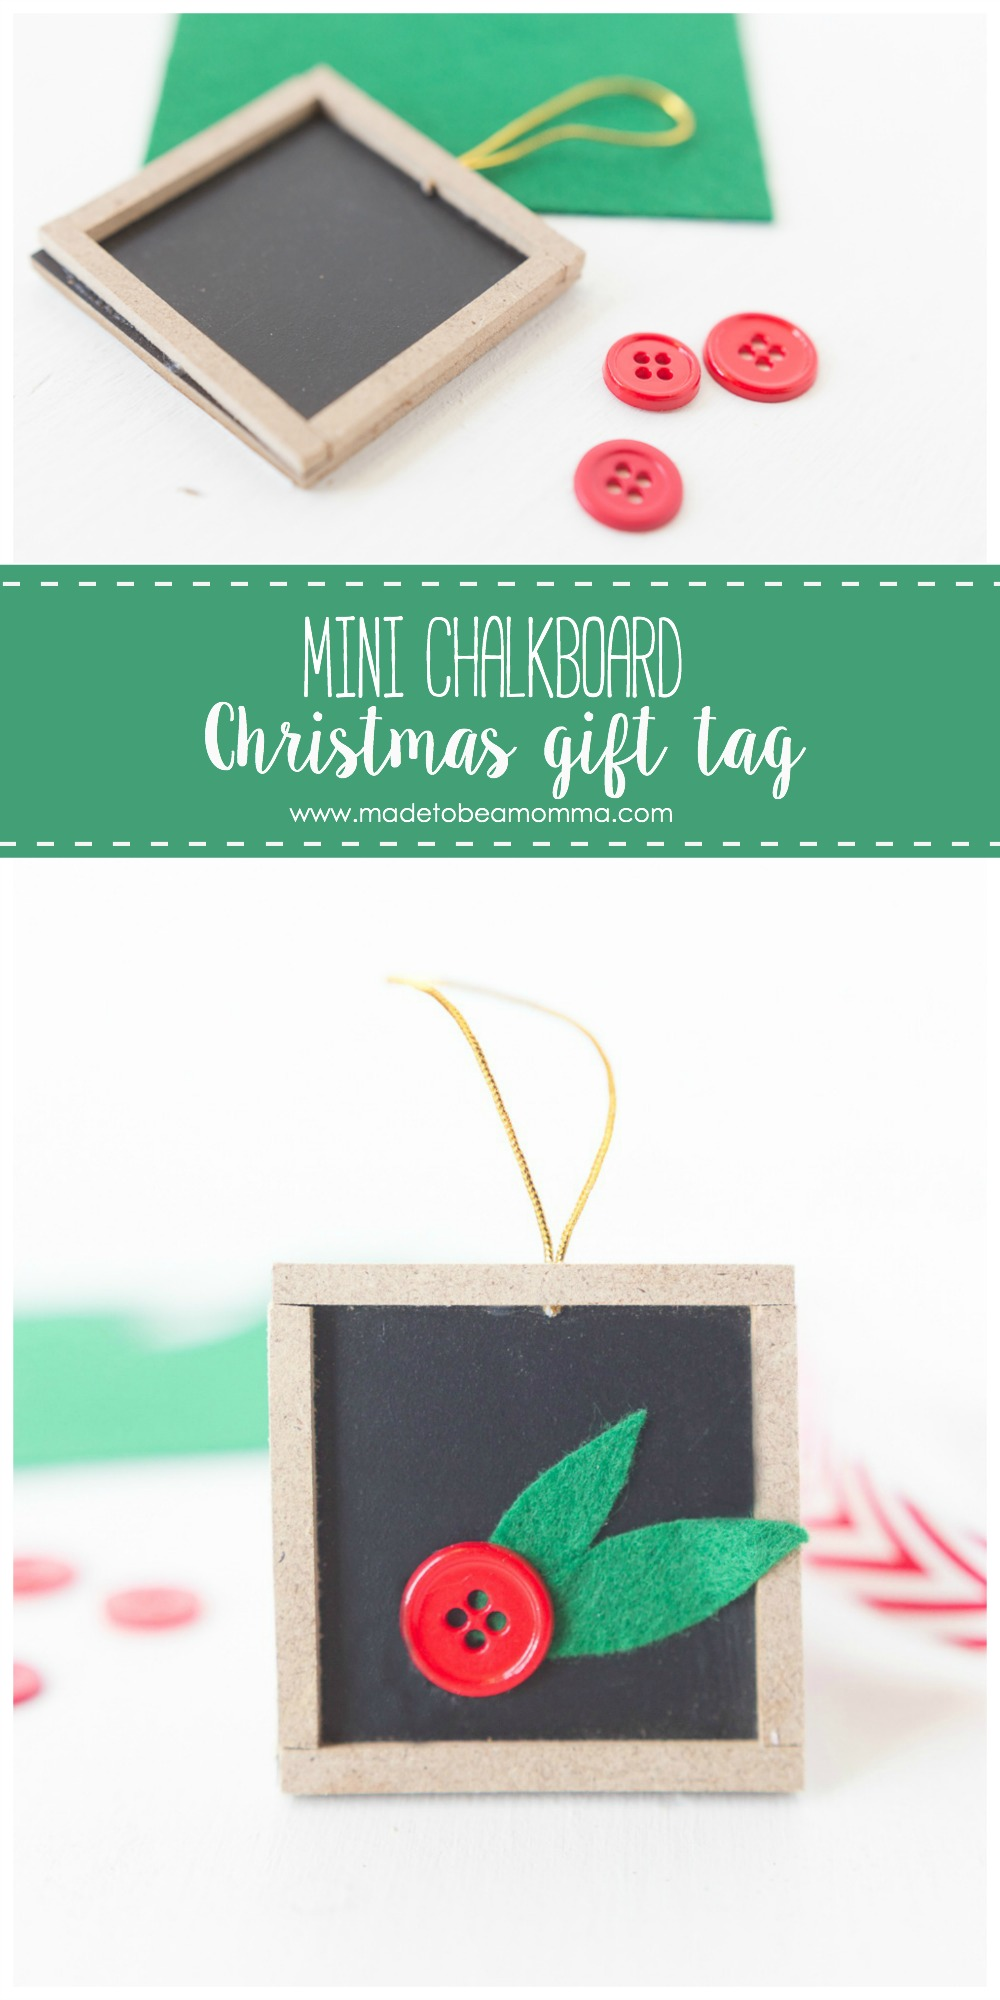 Mini Chalkboard Christmas Gift Tag by Made to be a Momma